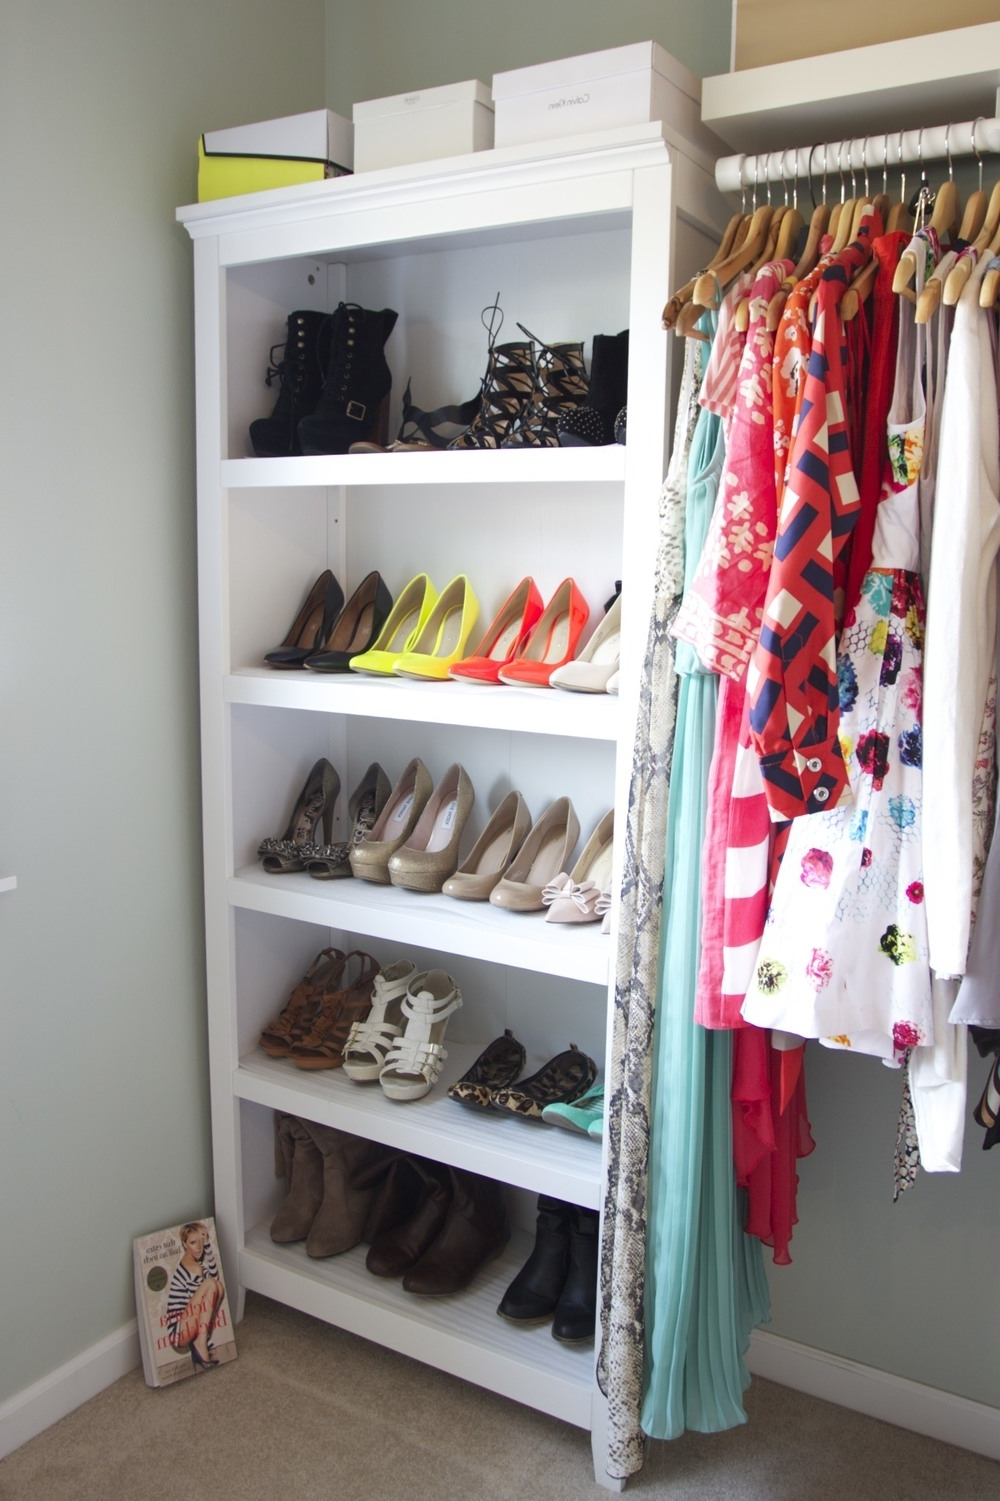 Widely Used Carson 5 Shelf Bookcases With Regard To Welcome To The Closet — In Jen's Life (View 15 of 15)